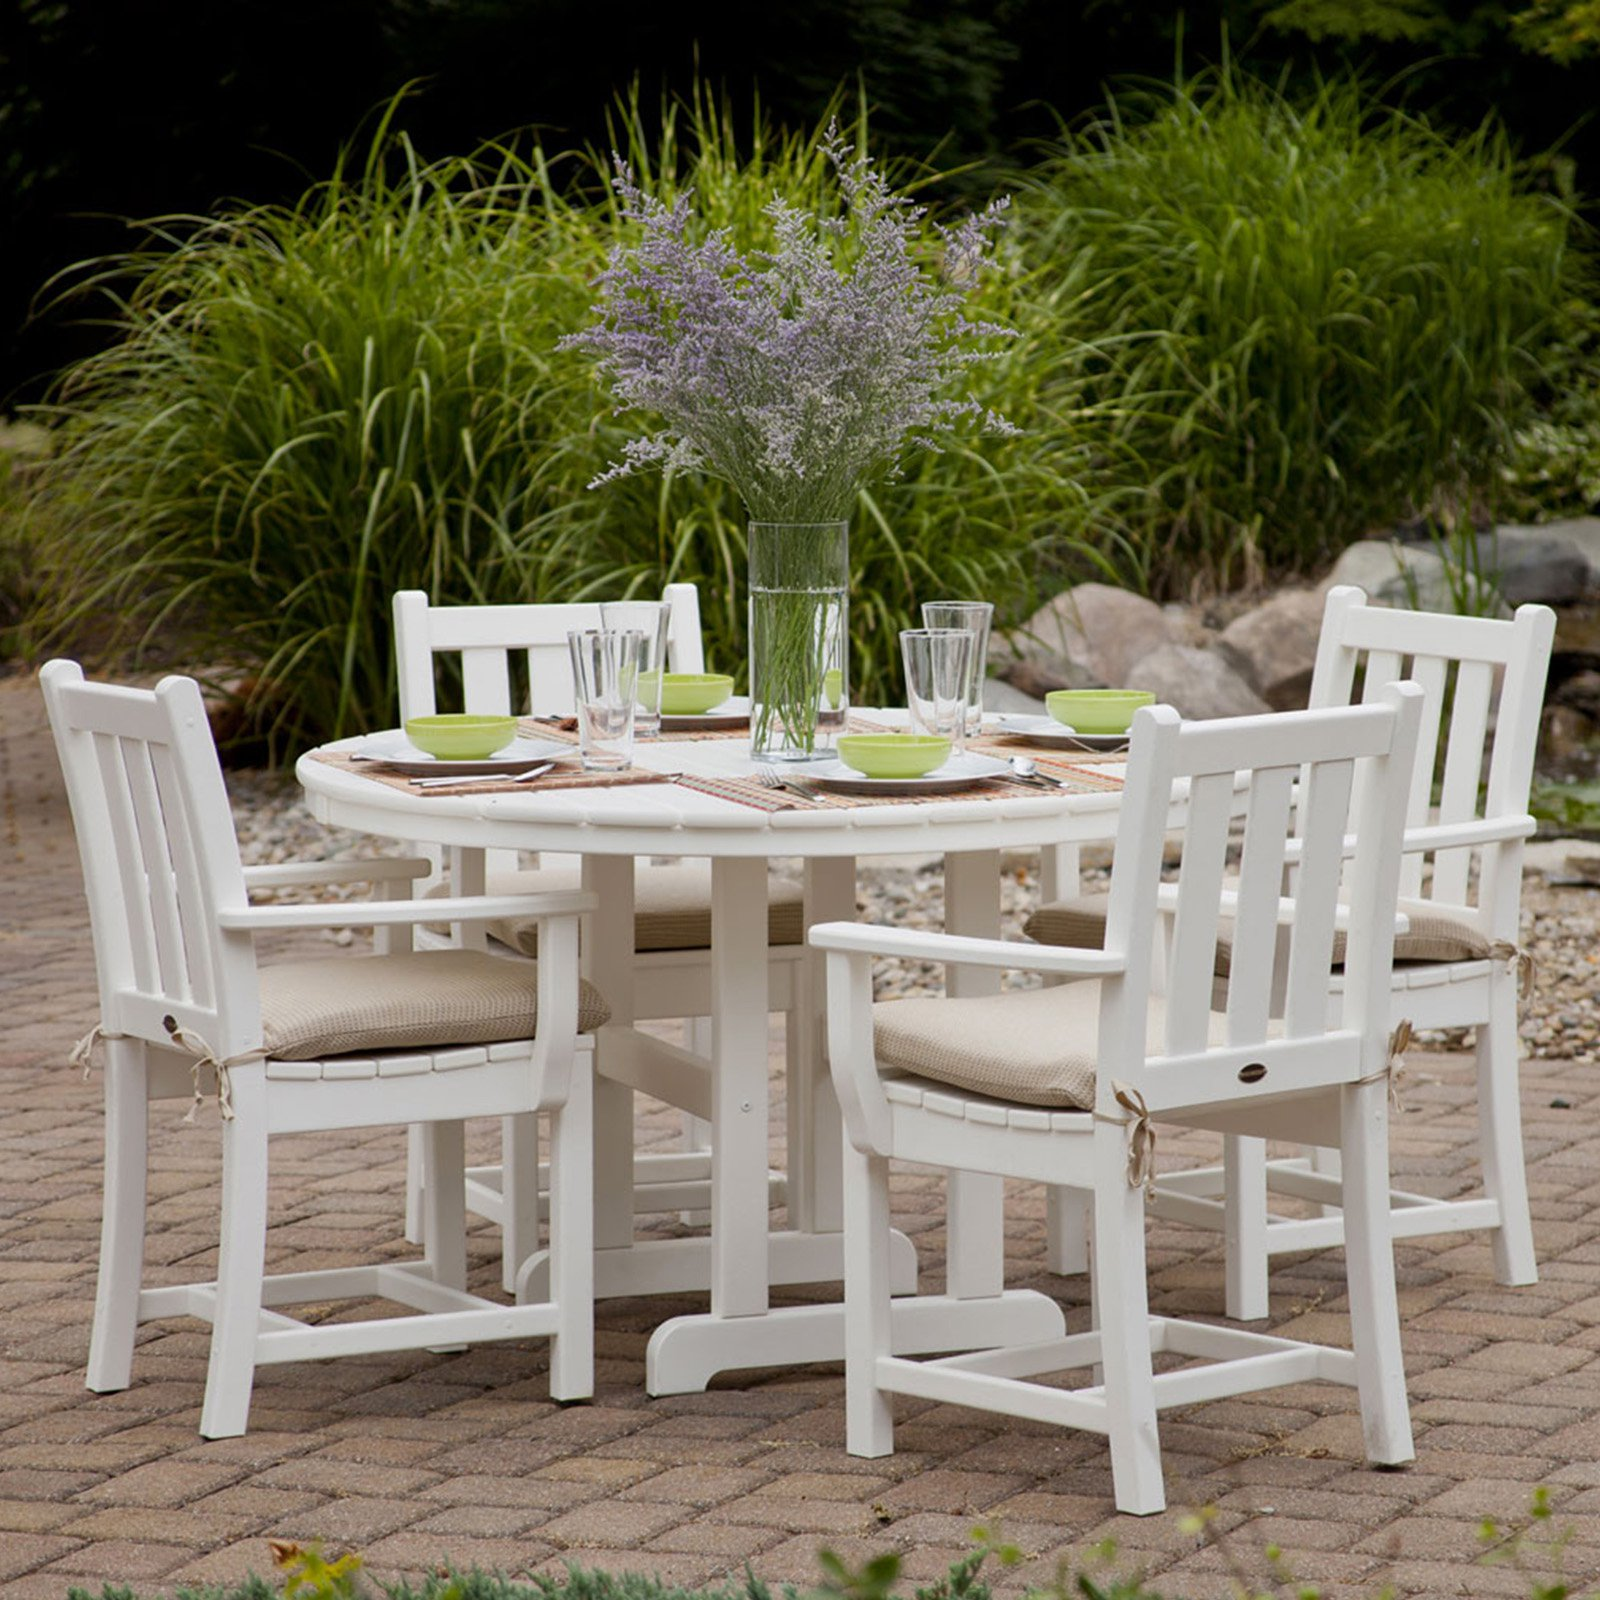 POLYWOOD® Traditional Garden Dining Set - Seats 4